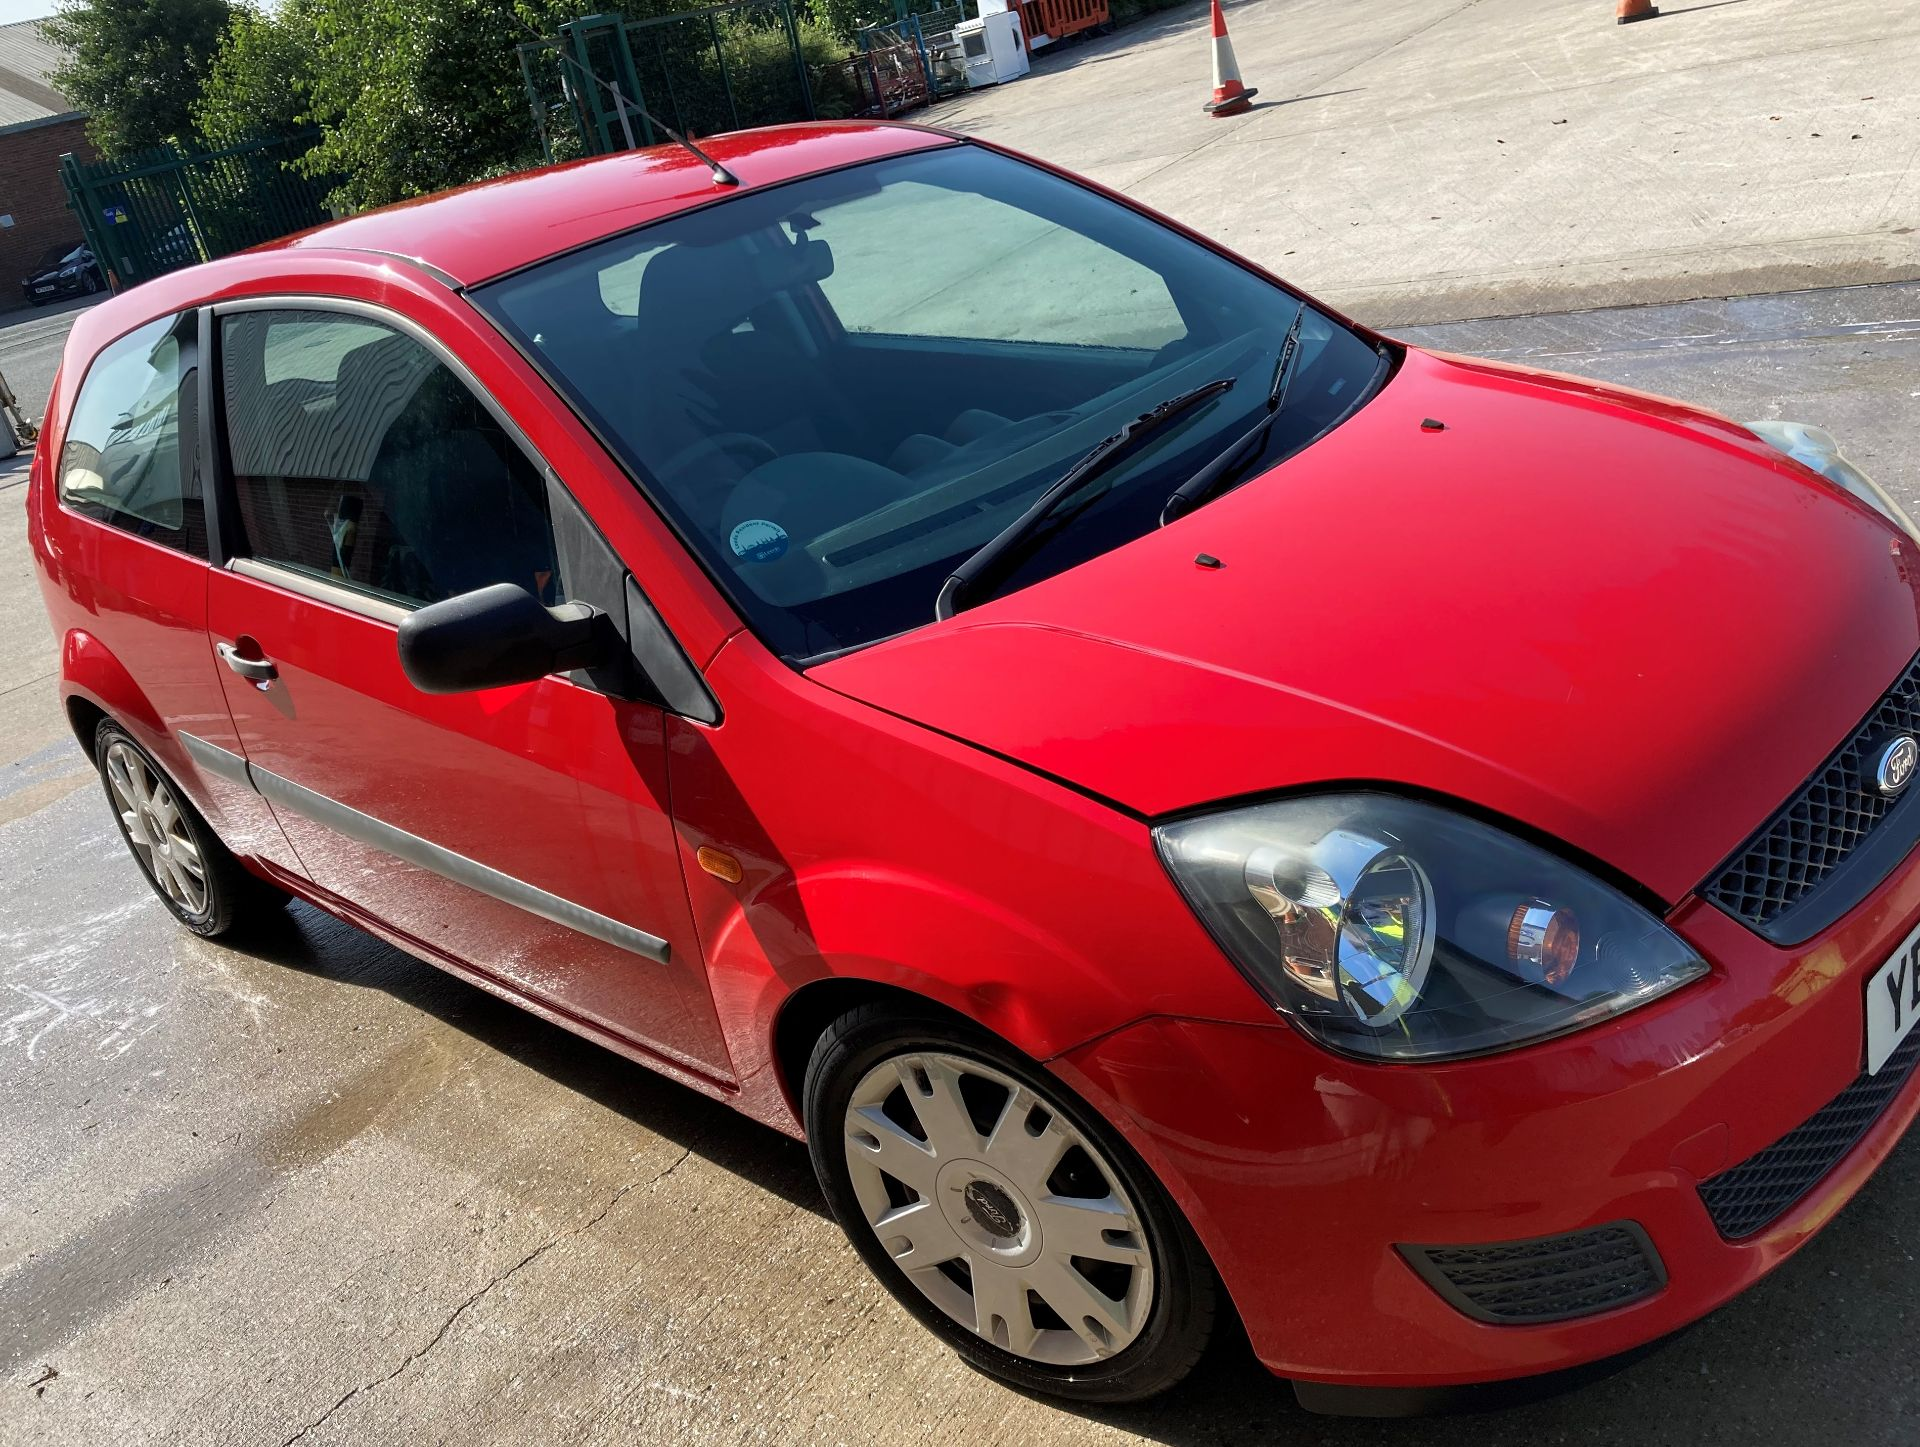 FROM A DECEASED ESTATE FORD FIESTA STYLE 1.2 3 door hatchback - petrol - red Reg No: YB08 XOX Rec. - Image 5 of 10